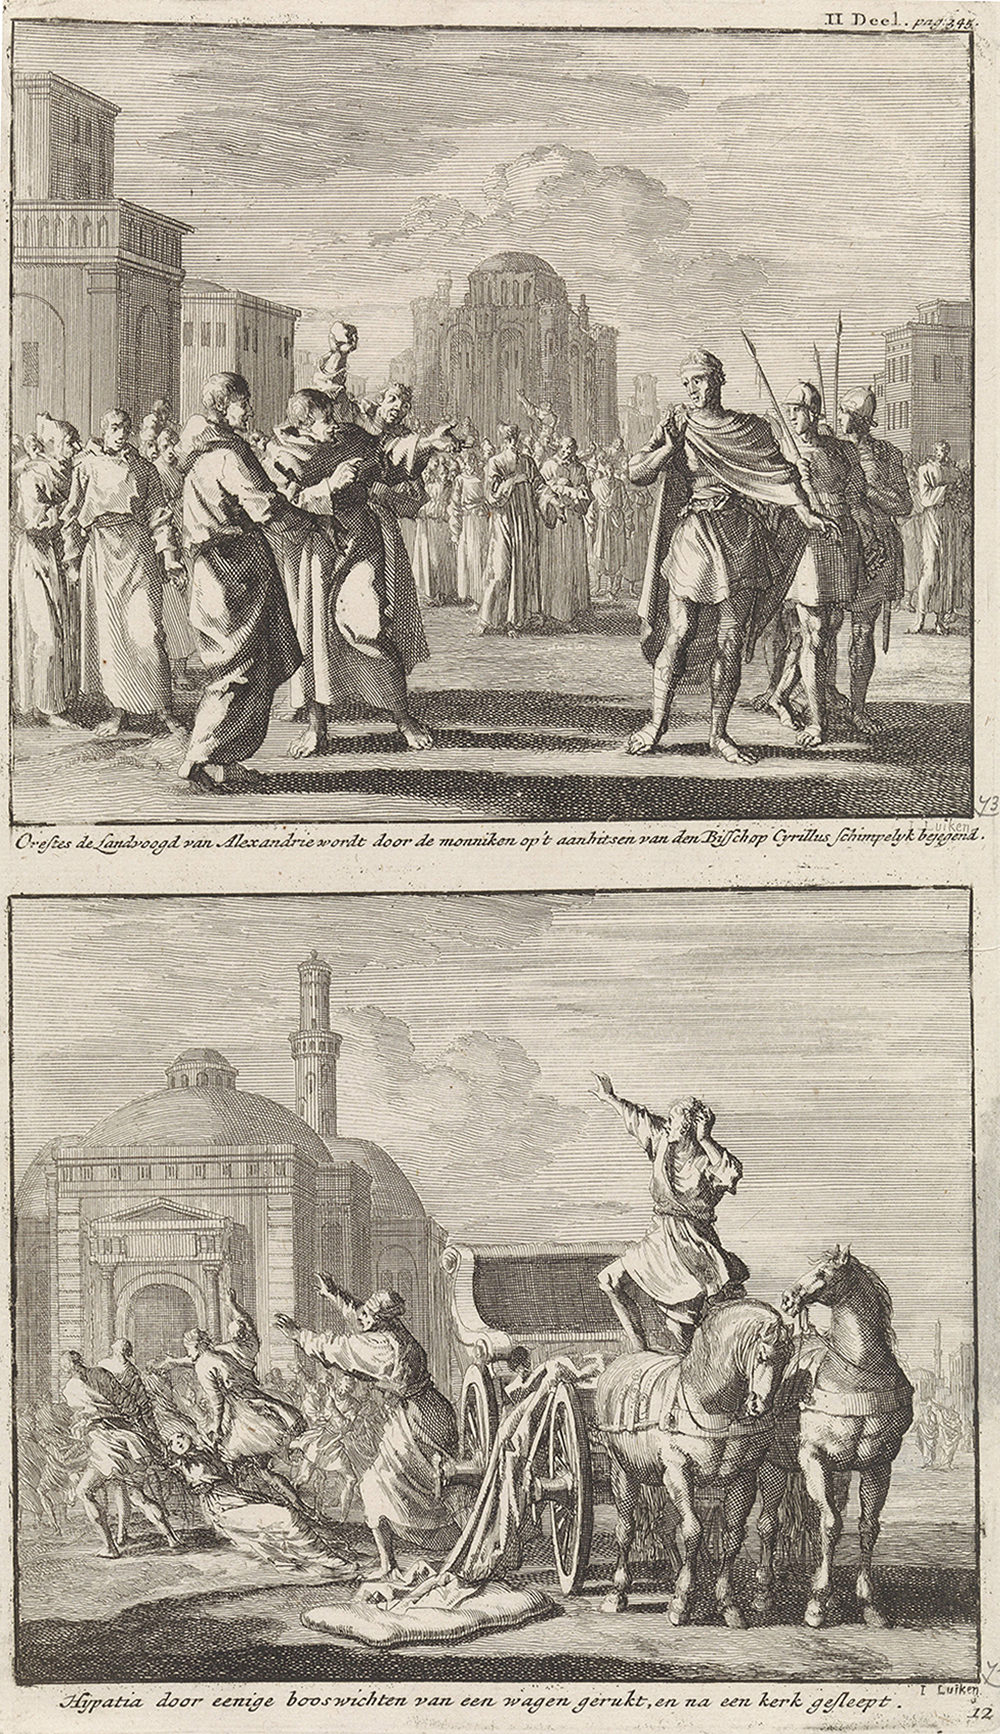 Orestes is mocked by monks and Hypatia is drawn from her carriage by Christians, by Jan Luyken, 1701. Rijksmuseum.